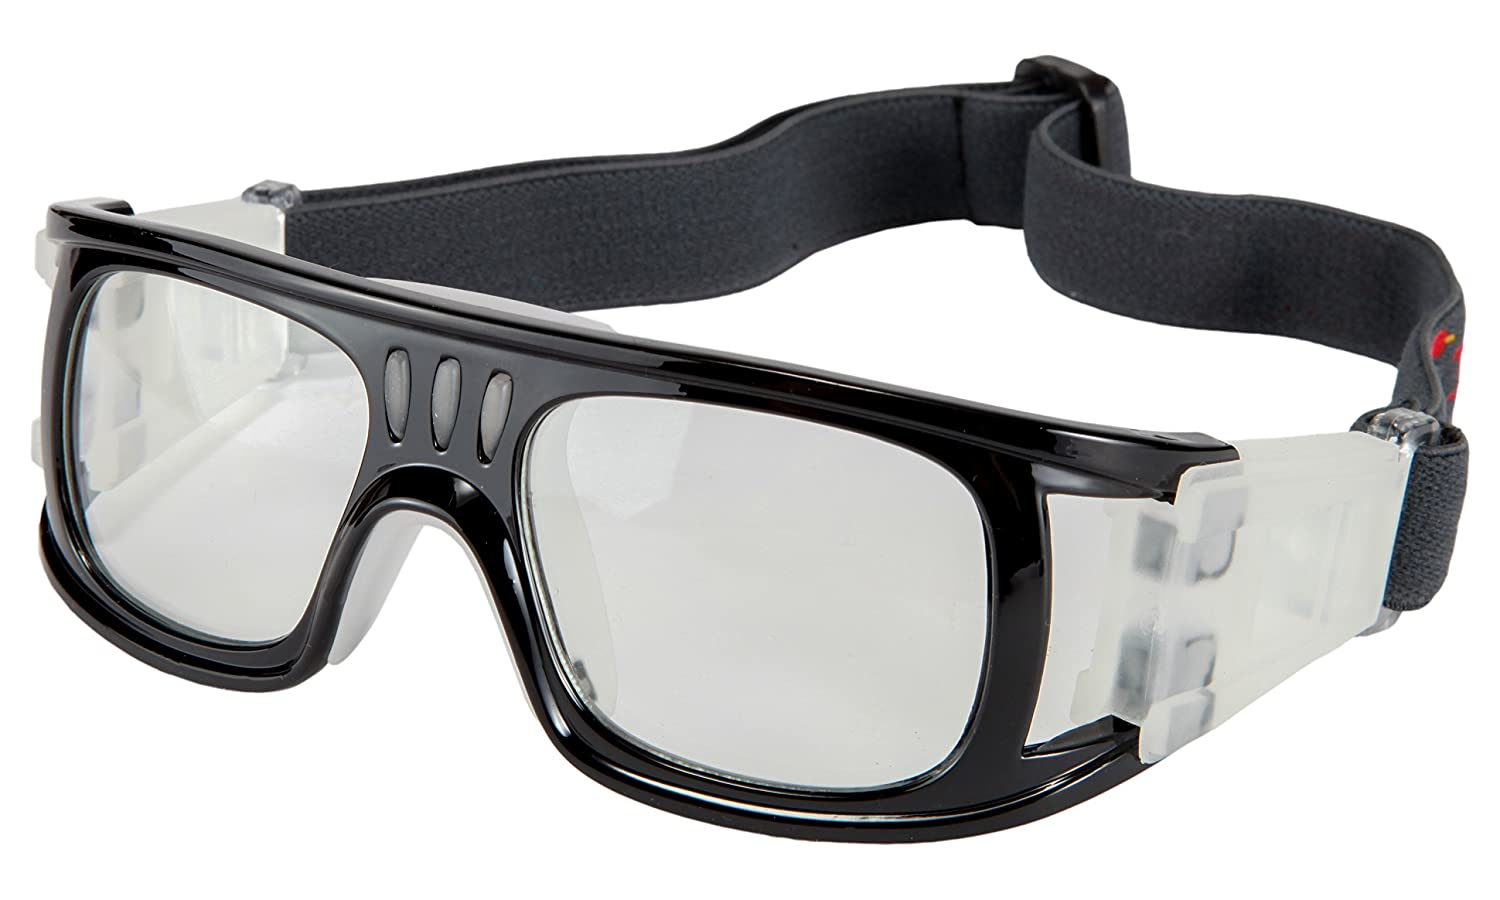 advanced-protective-sport-eyewear-glasses